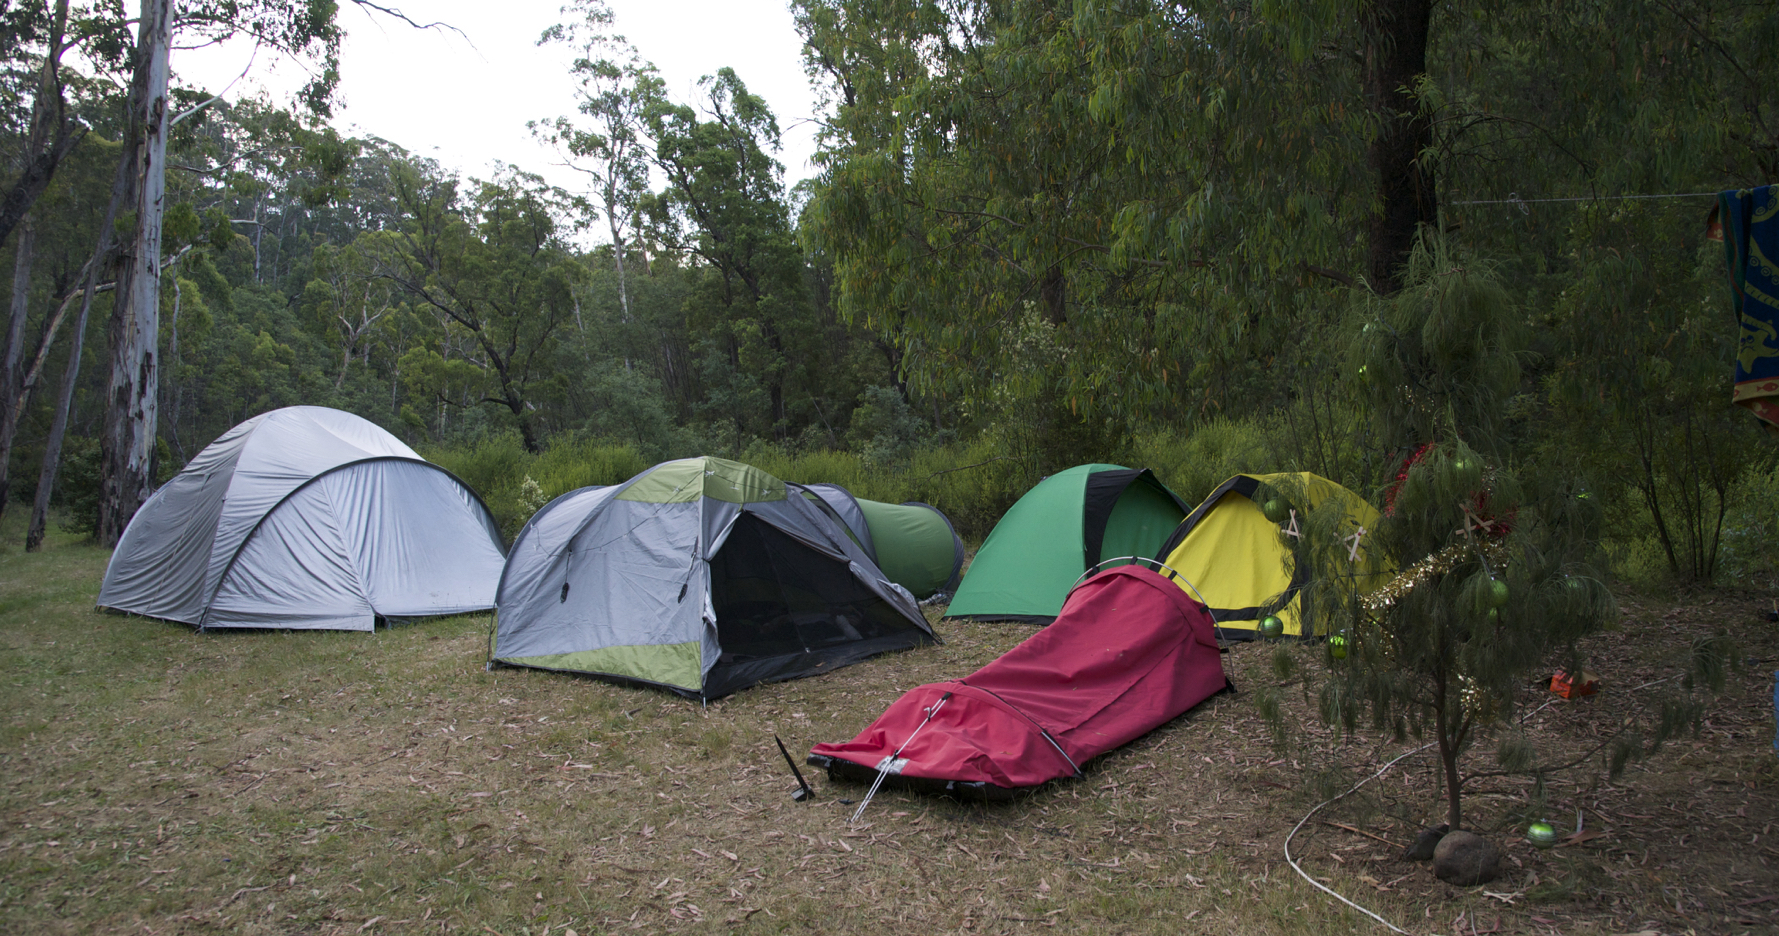 Camping at Christmas in tents and swags with a Christmas tree out the front